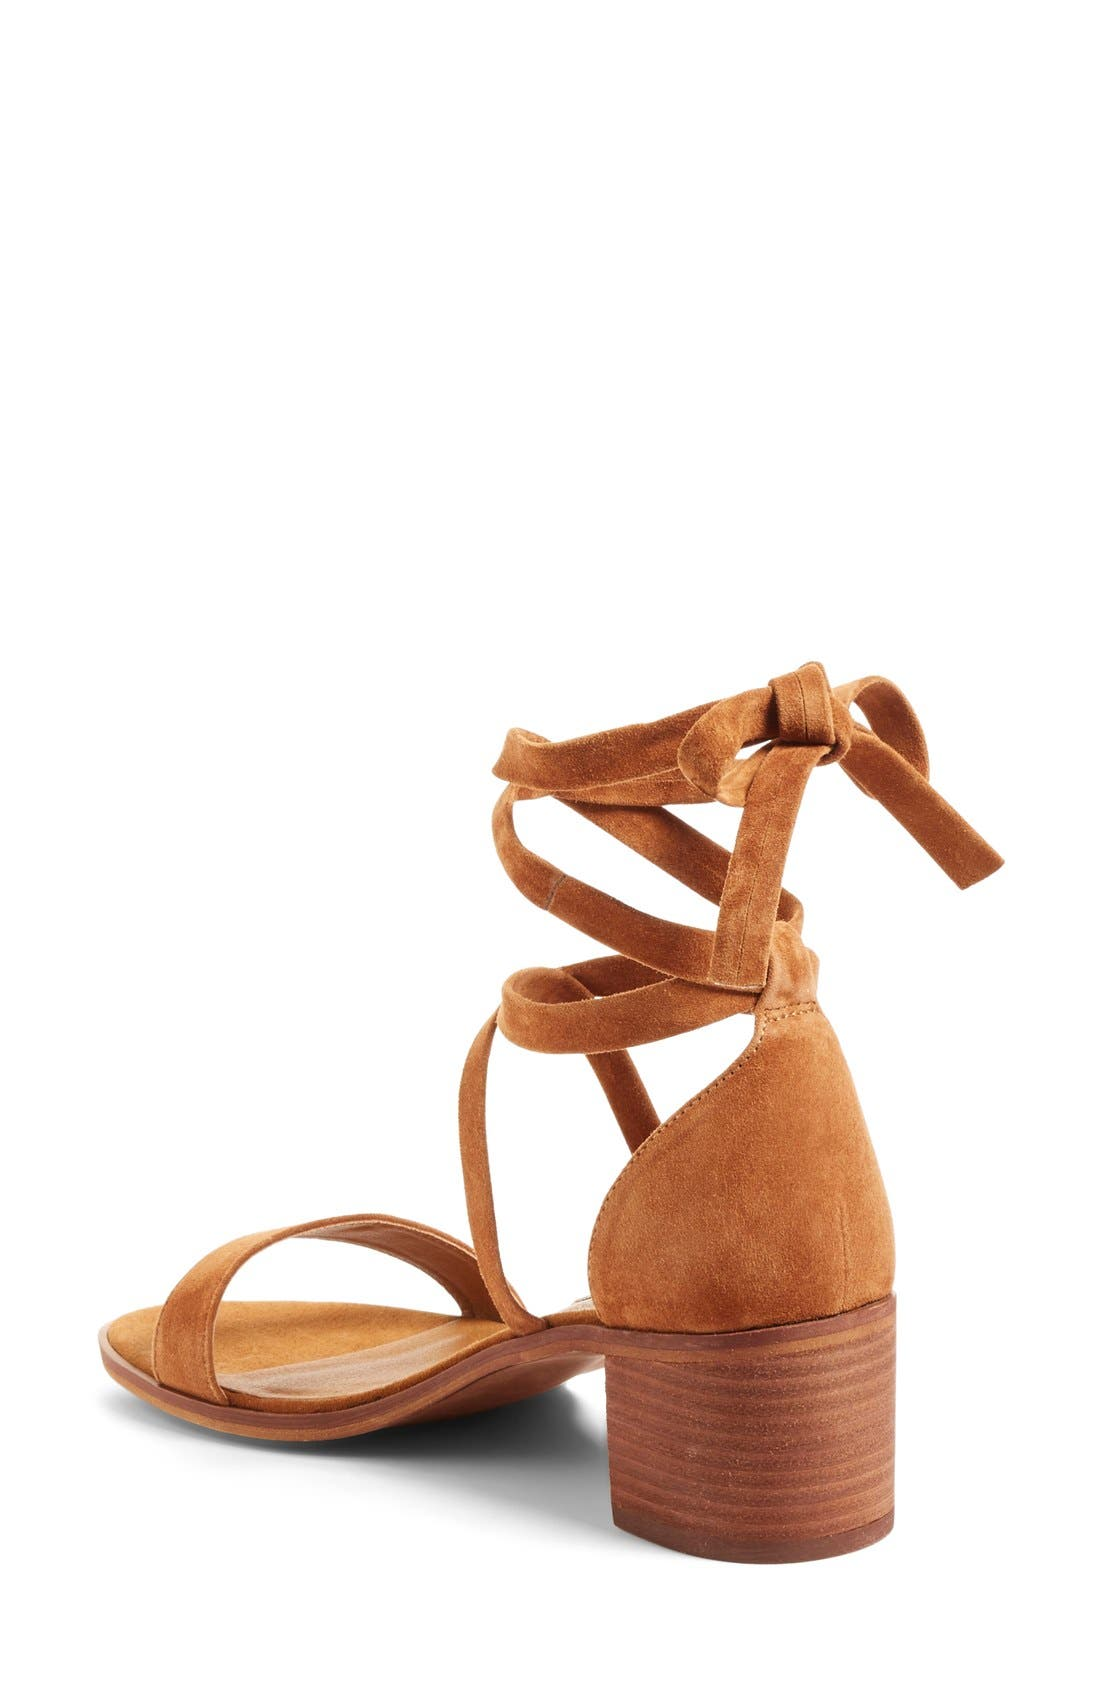 'Rizzaa' Ankle Strap Sandal,                             Alternate thumbnail 2, color,                             200